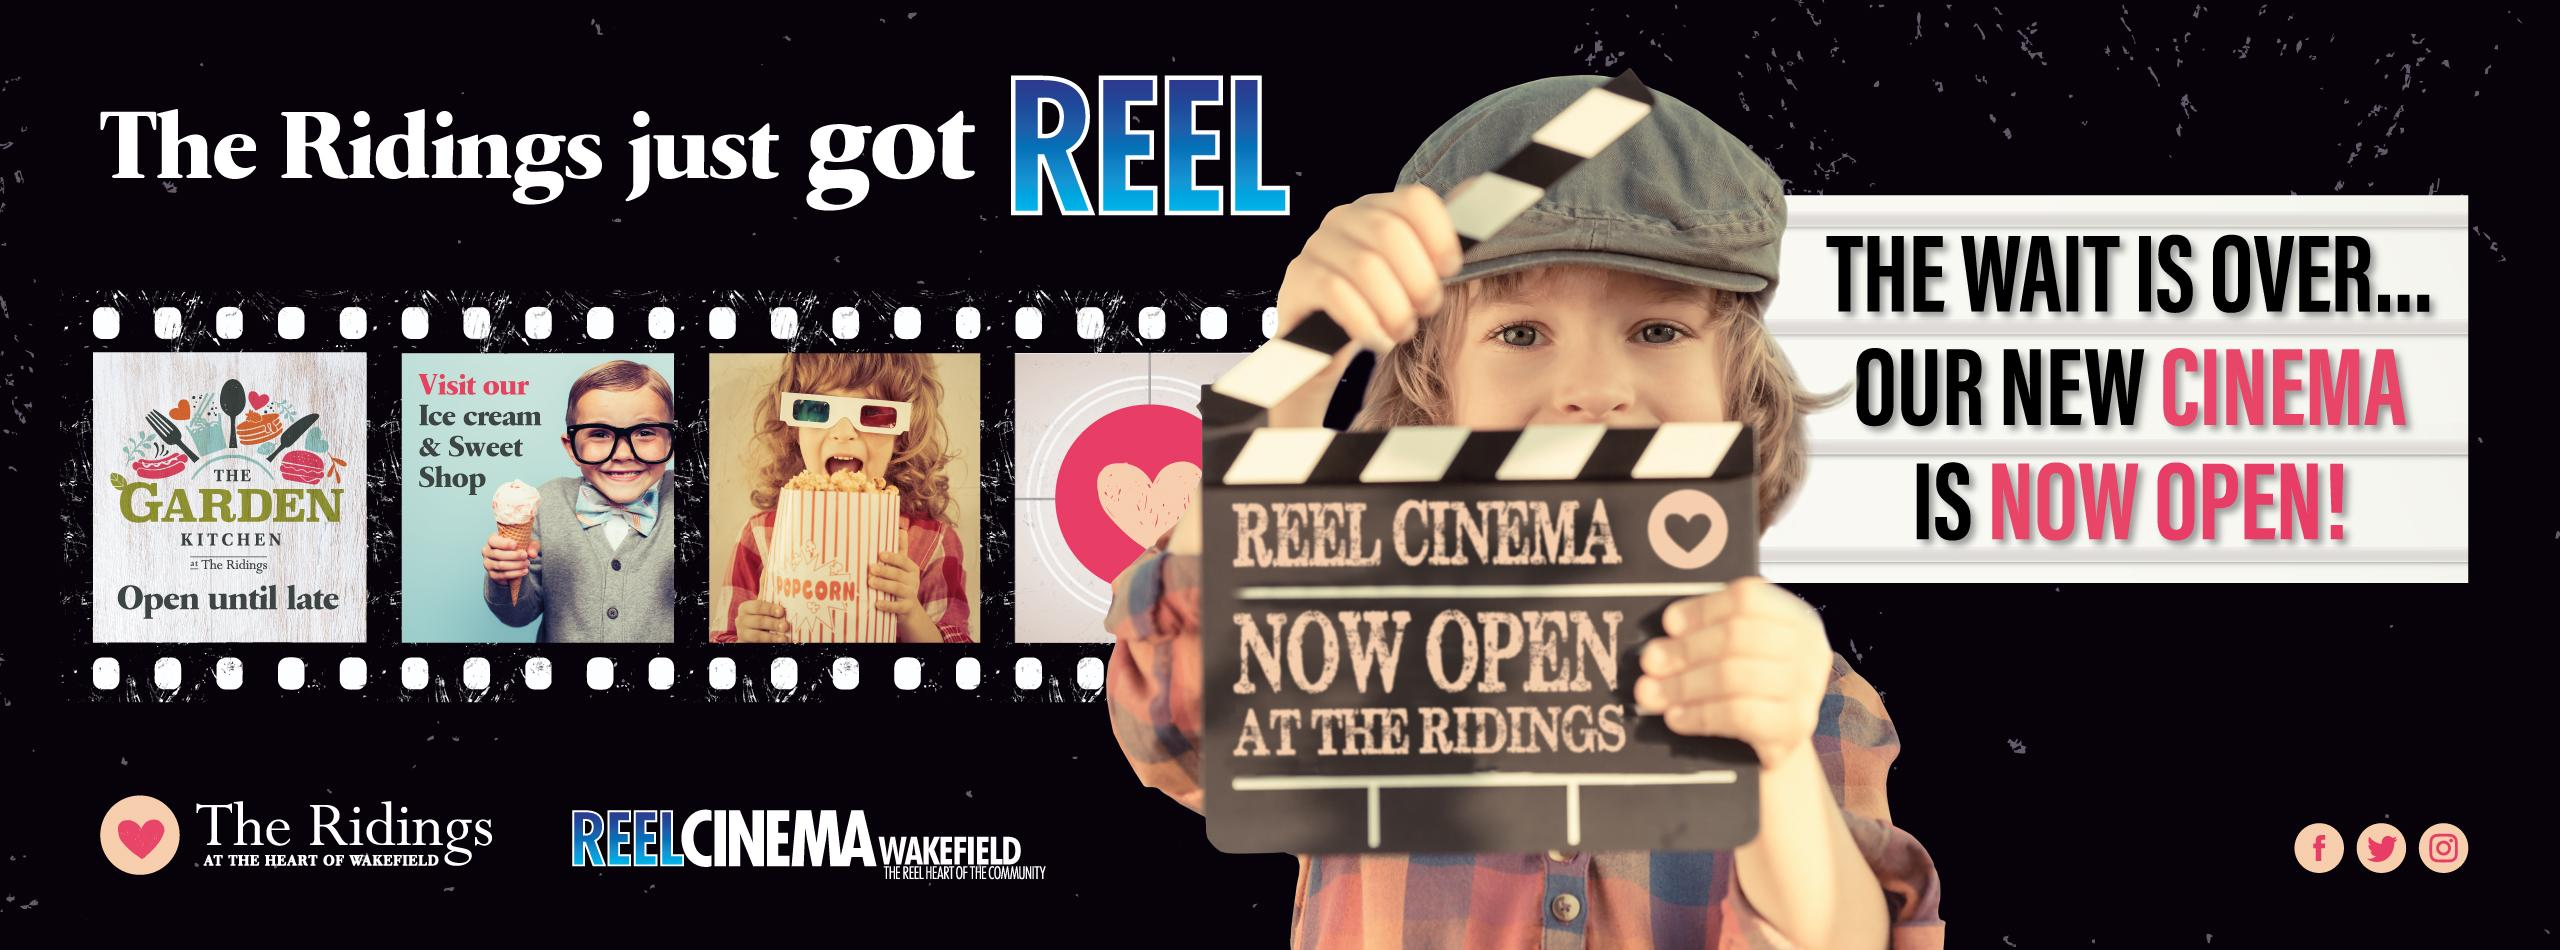 THE-RIDINGS-REEL-CINEMA_NOW-OPEN_Web-banner